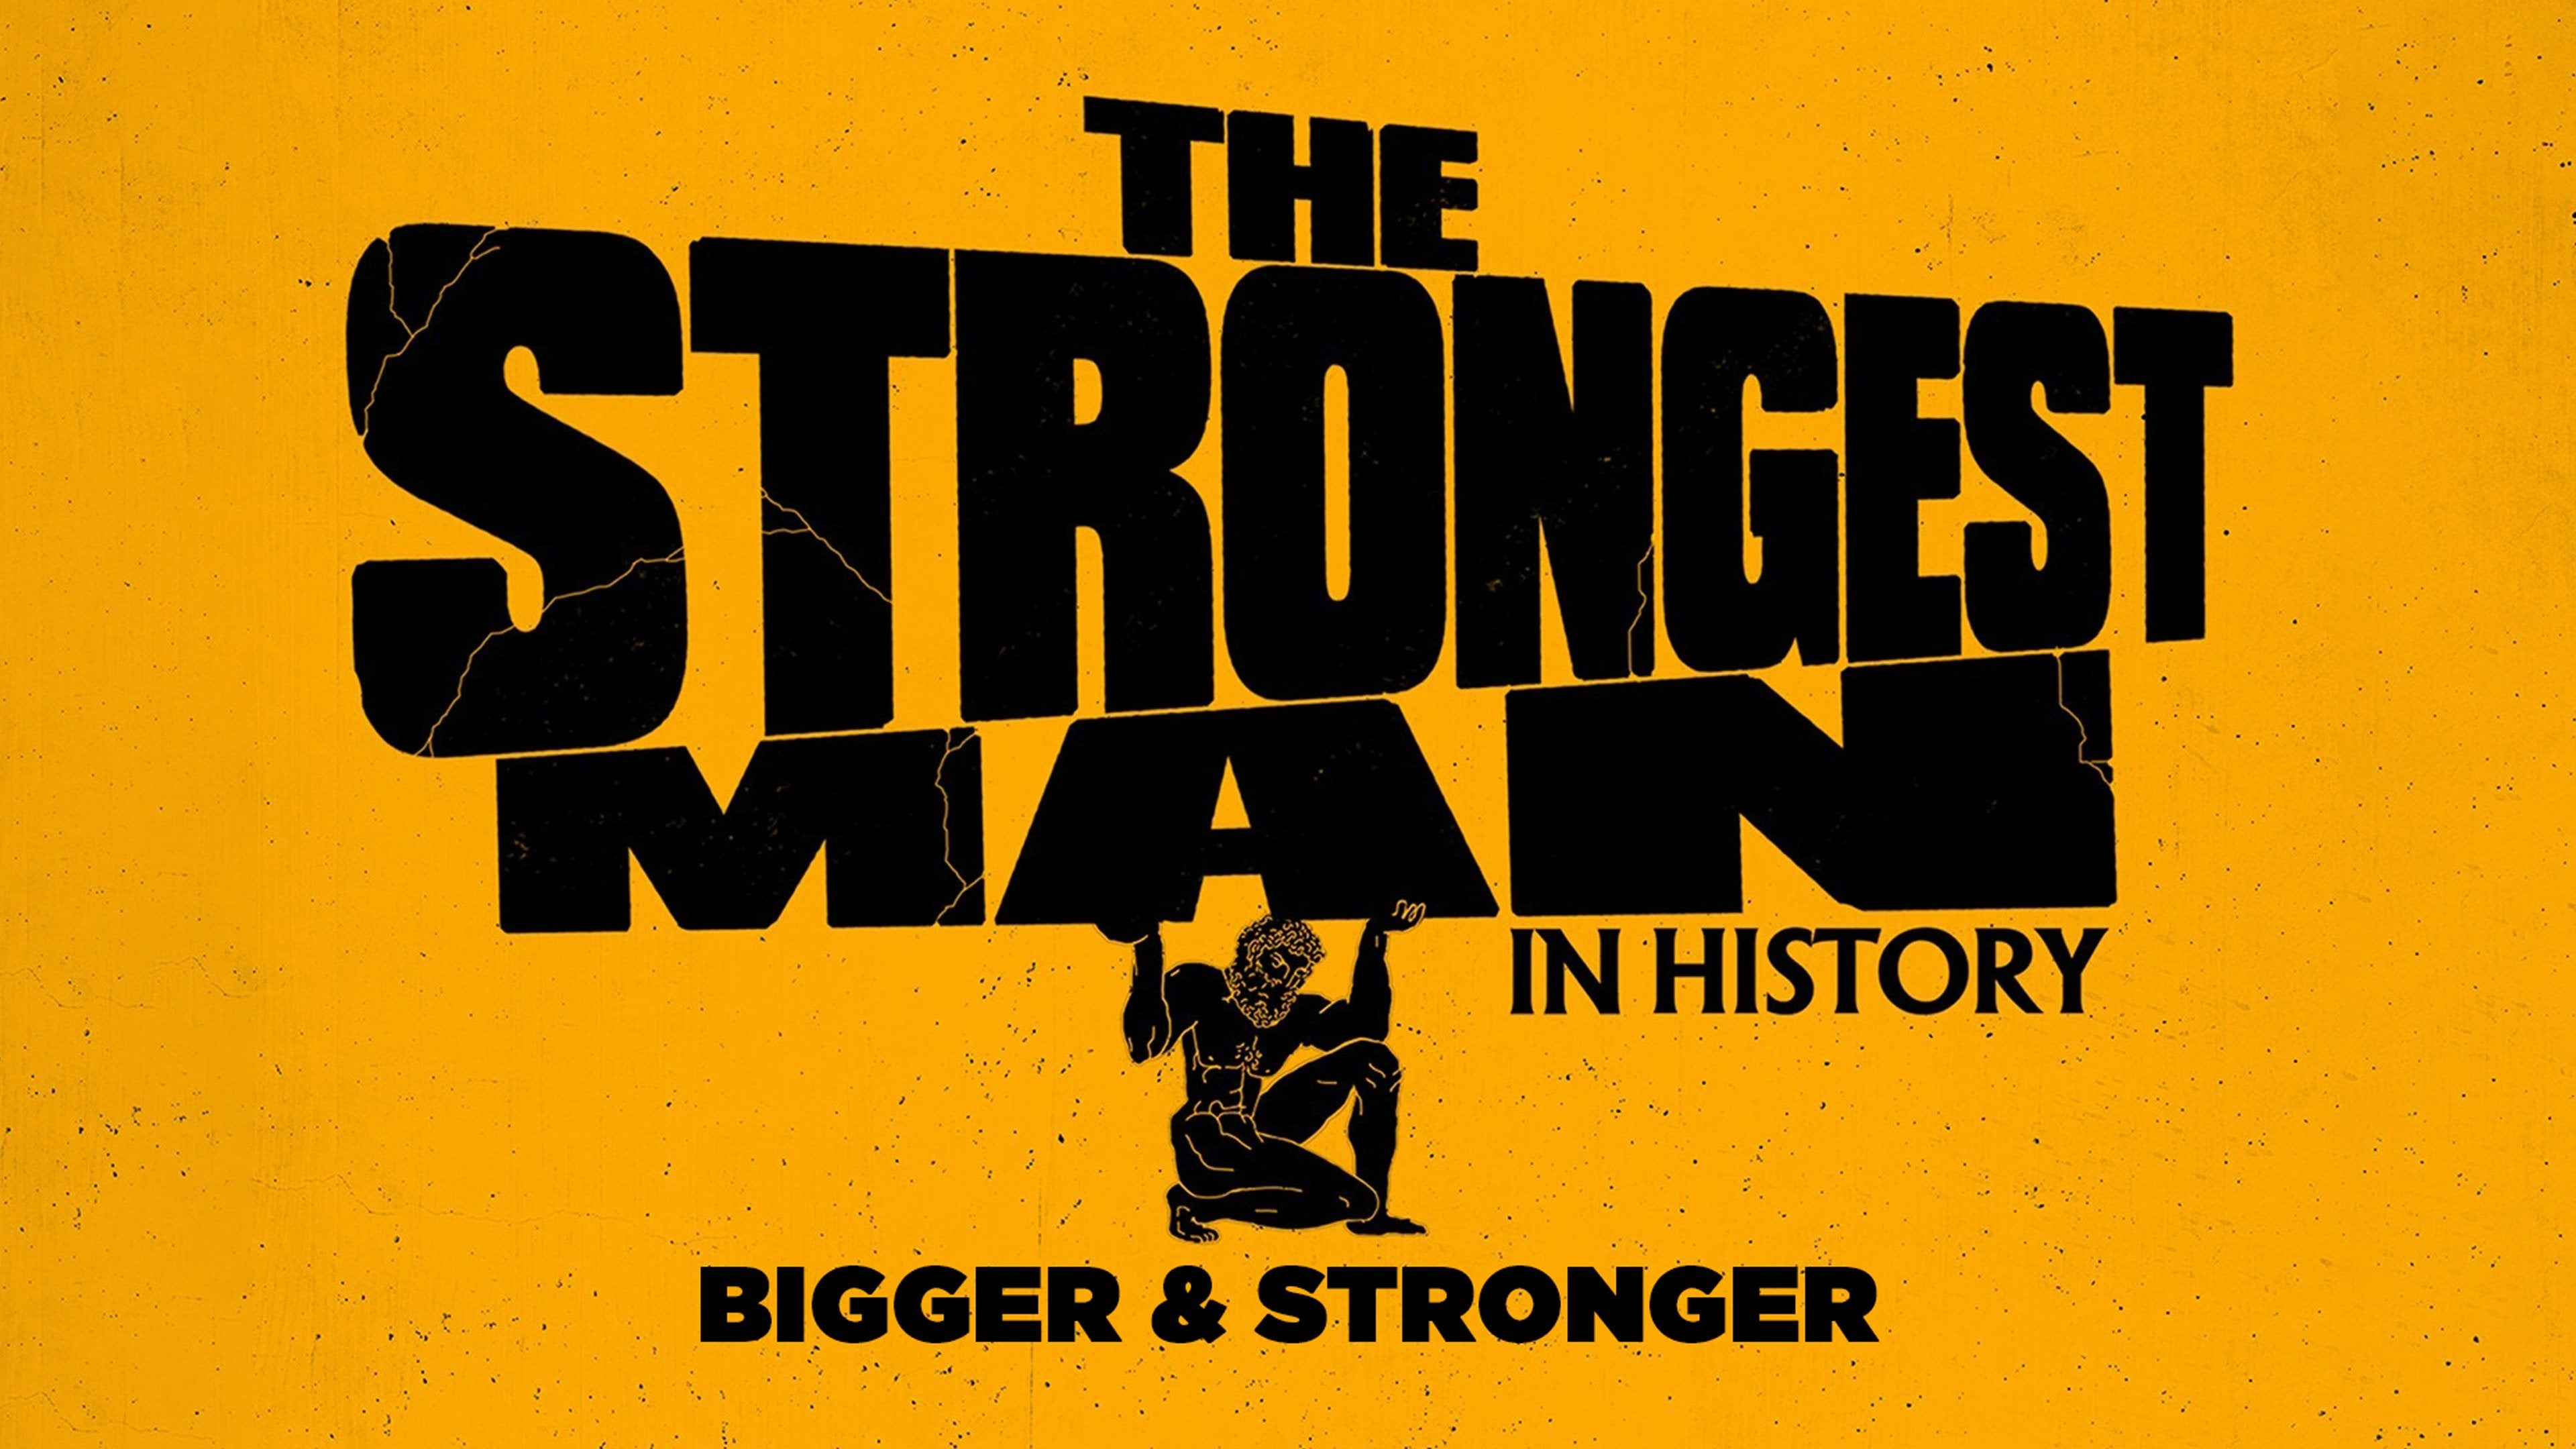 The Strongest Man in History: Bigger & Stronger